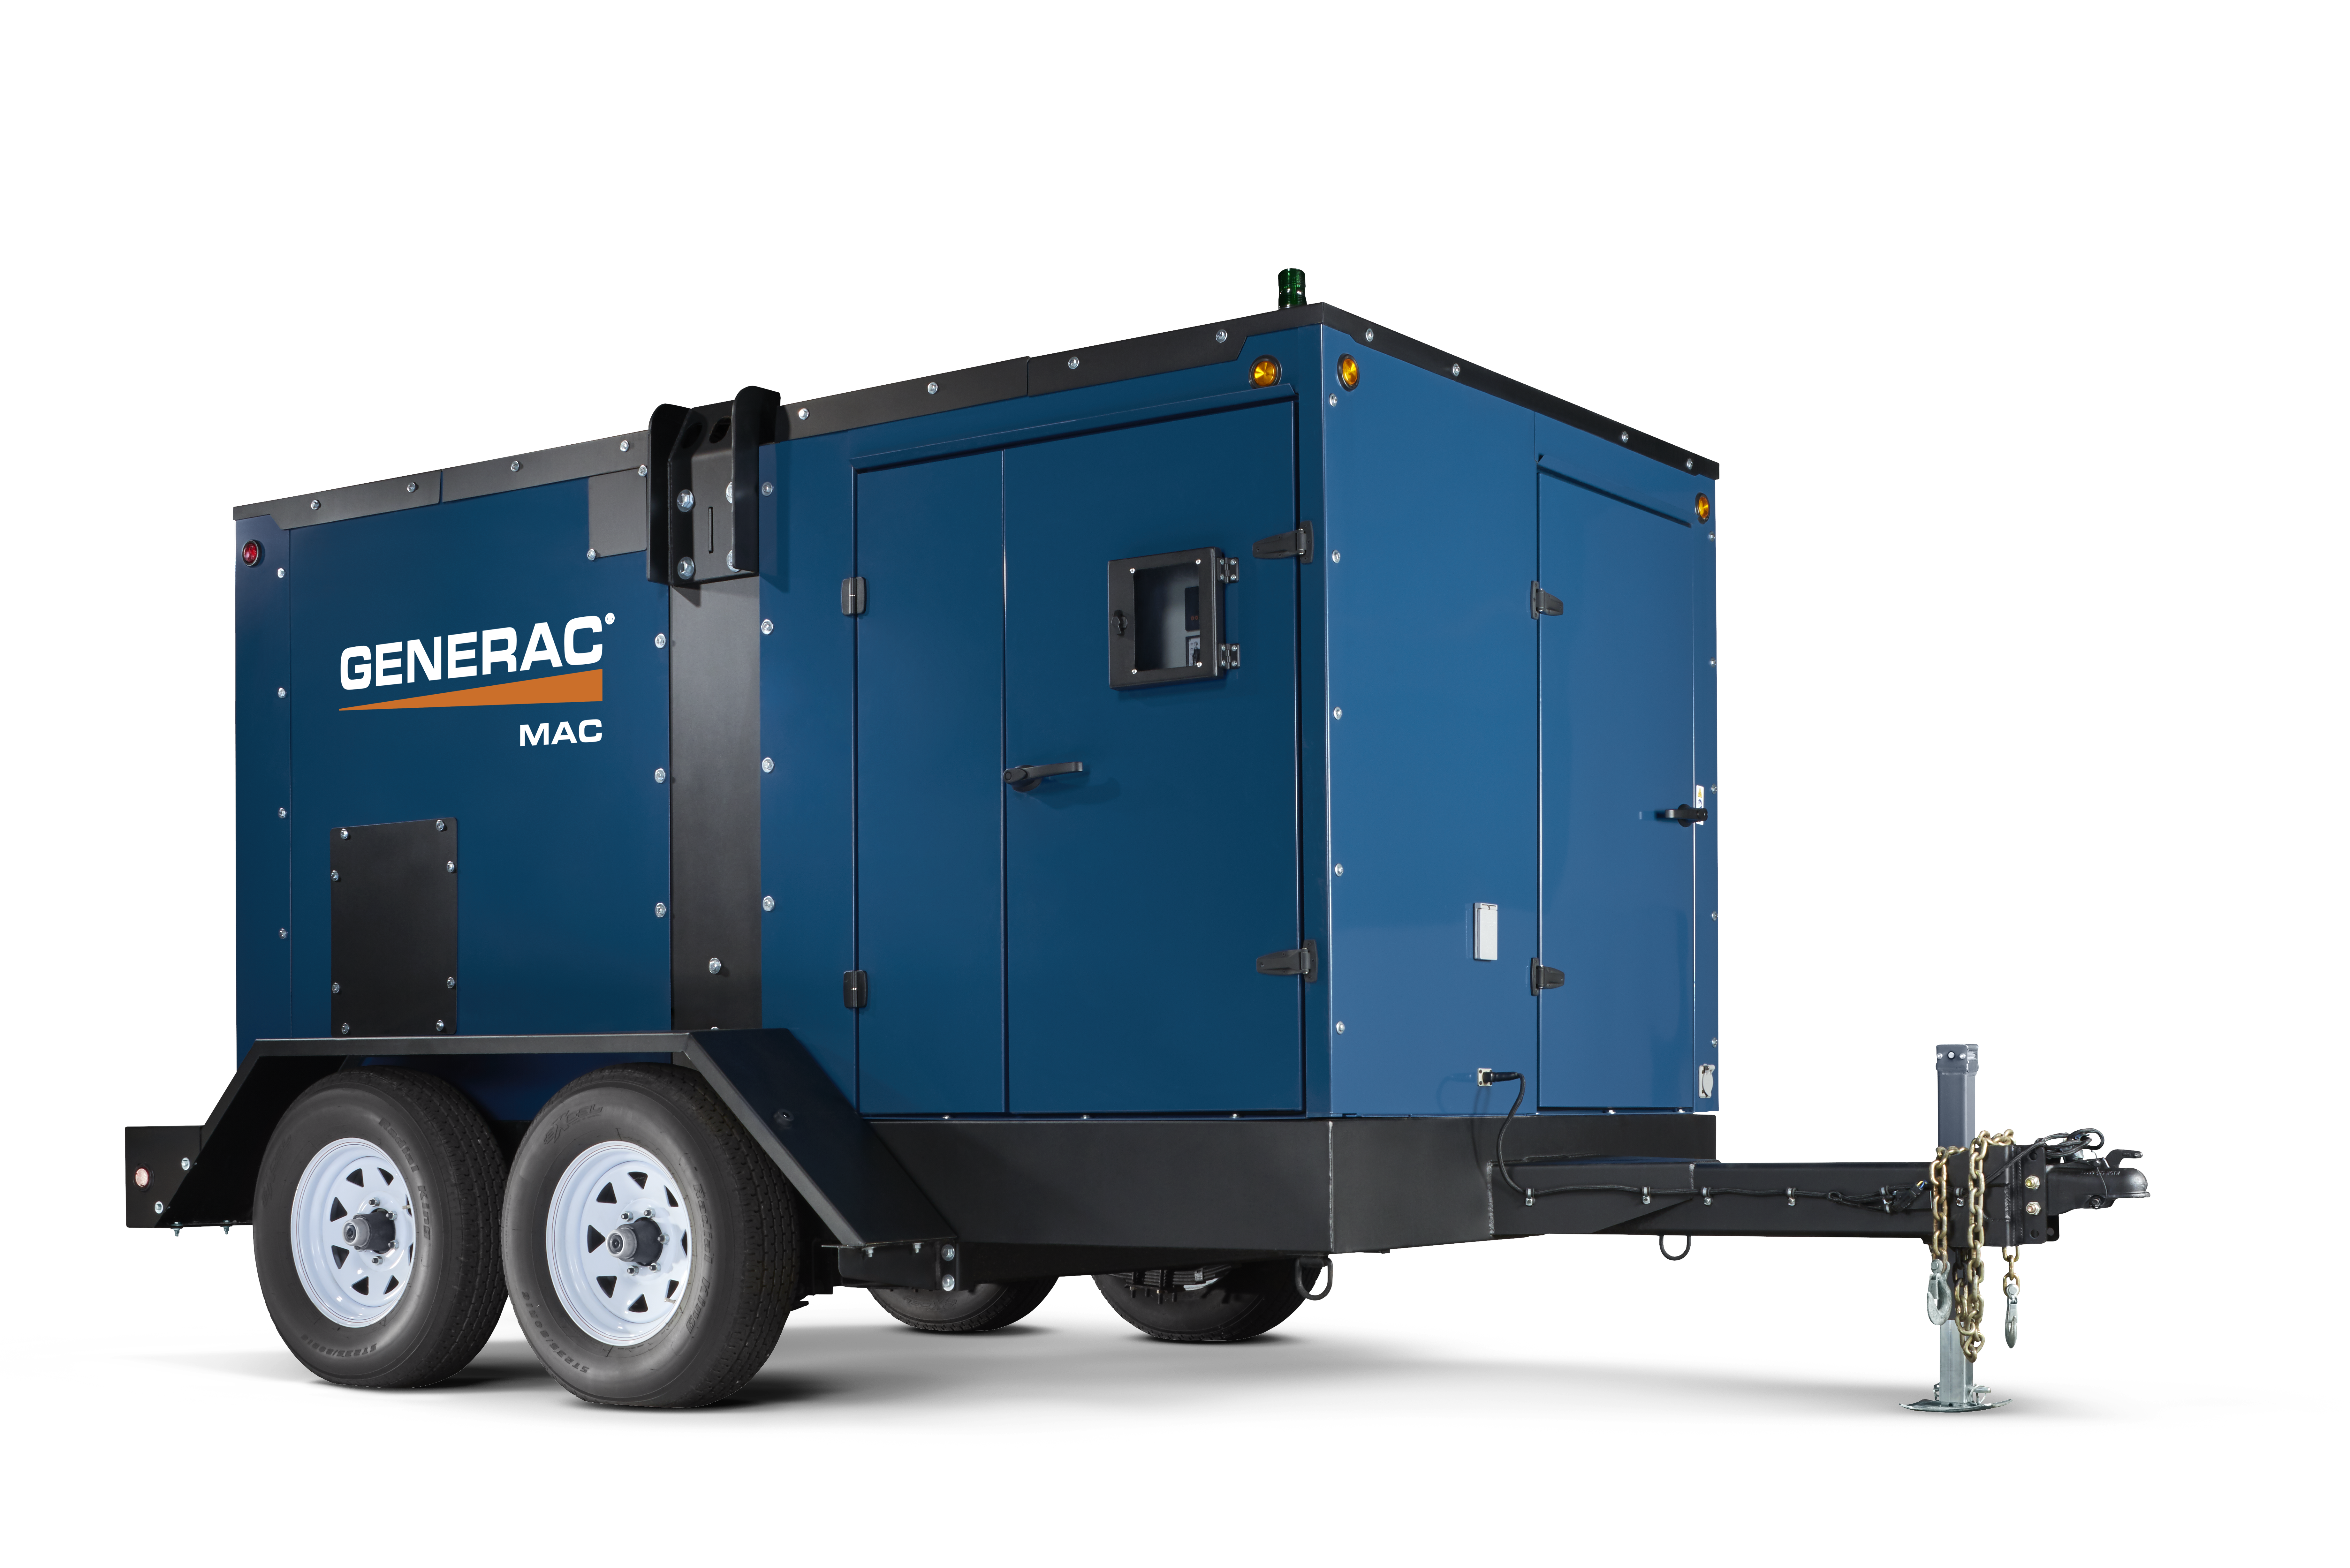 generac mac6000 mobile hydronic surface heater